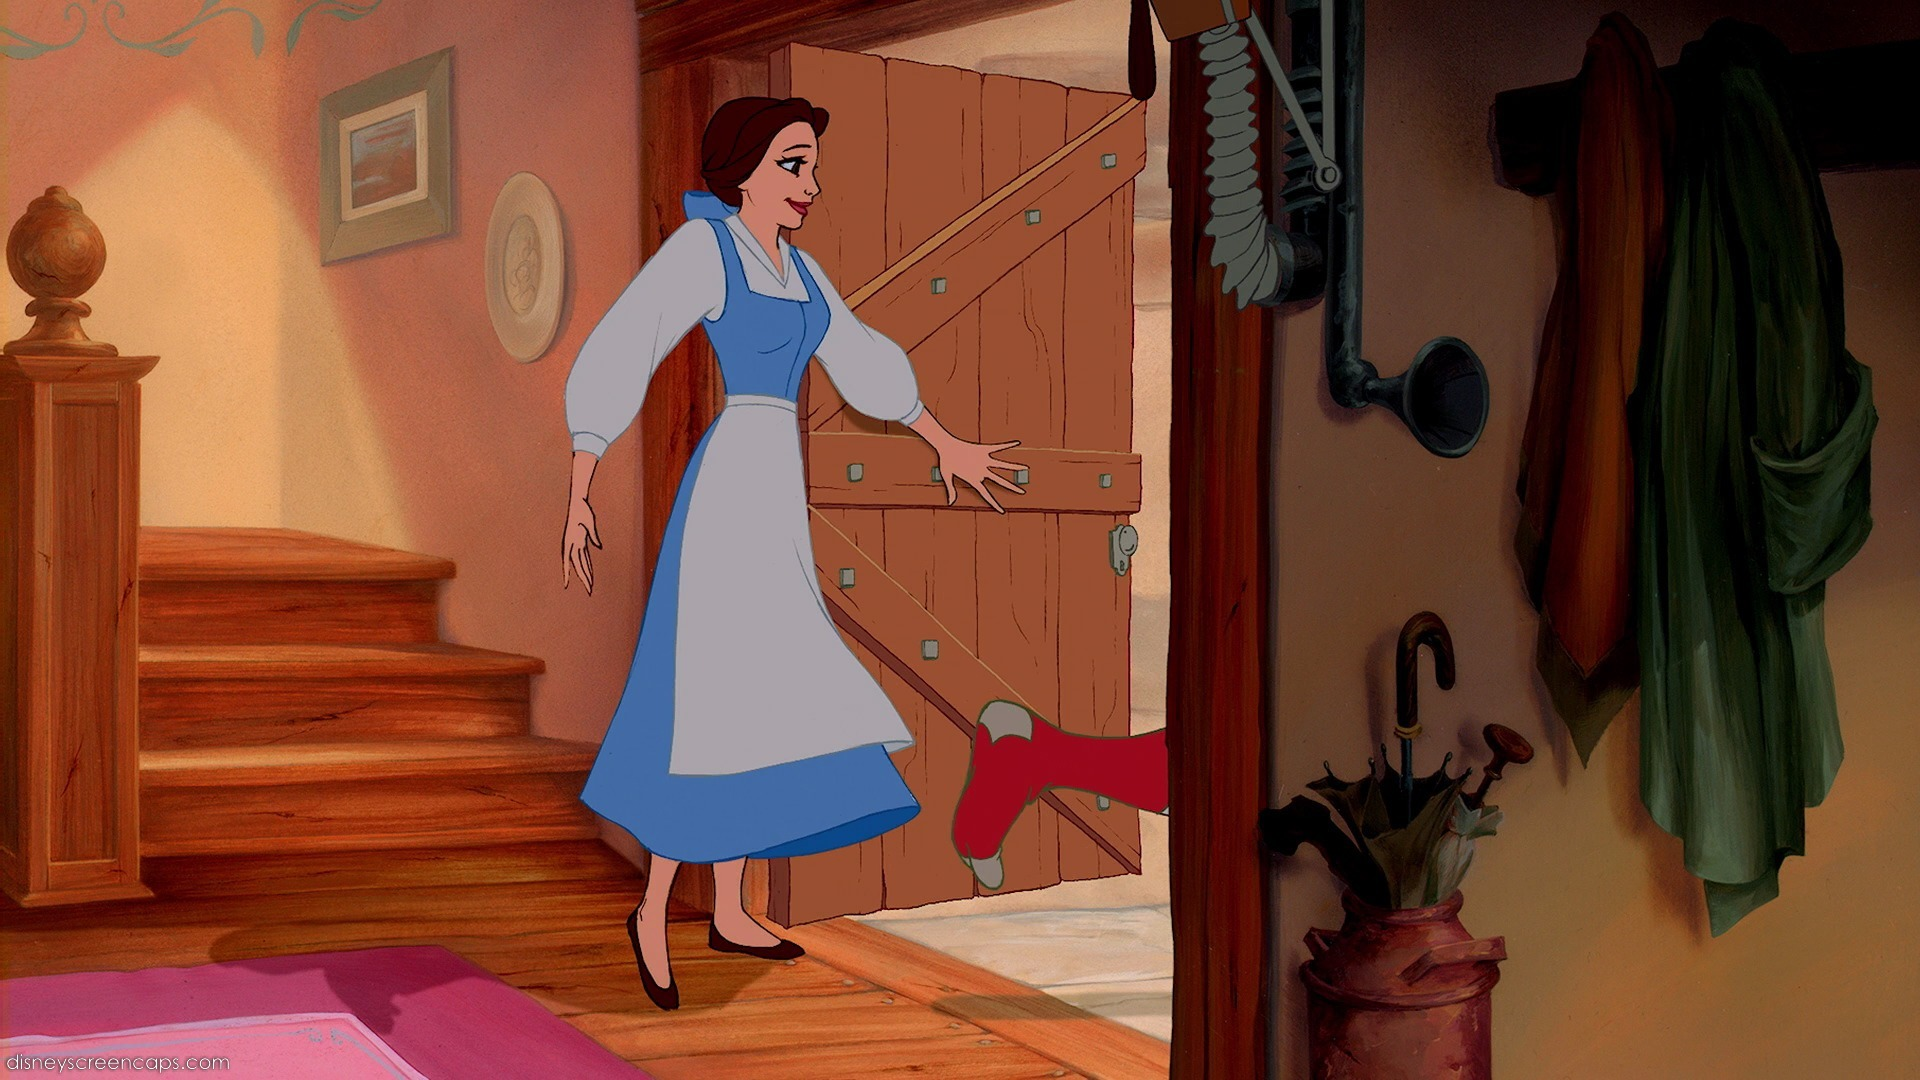 Le Meilleur If Maurice Is With Belle When Gaston Propose Her Will Ce Mois Ci